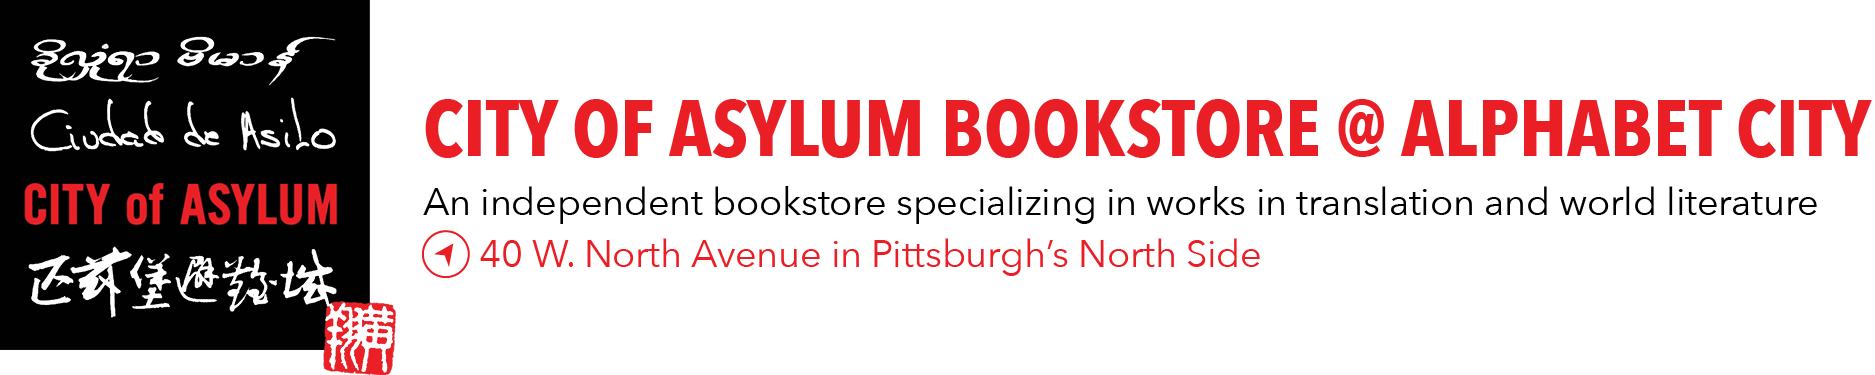 City of Asylum Bookstore